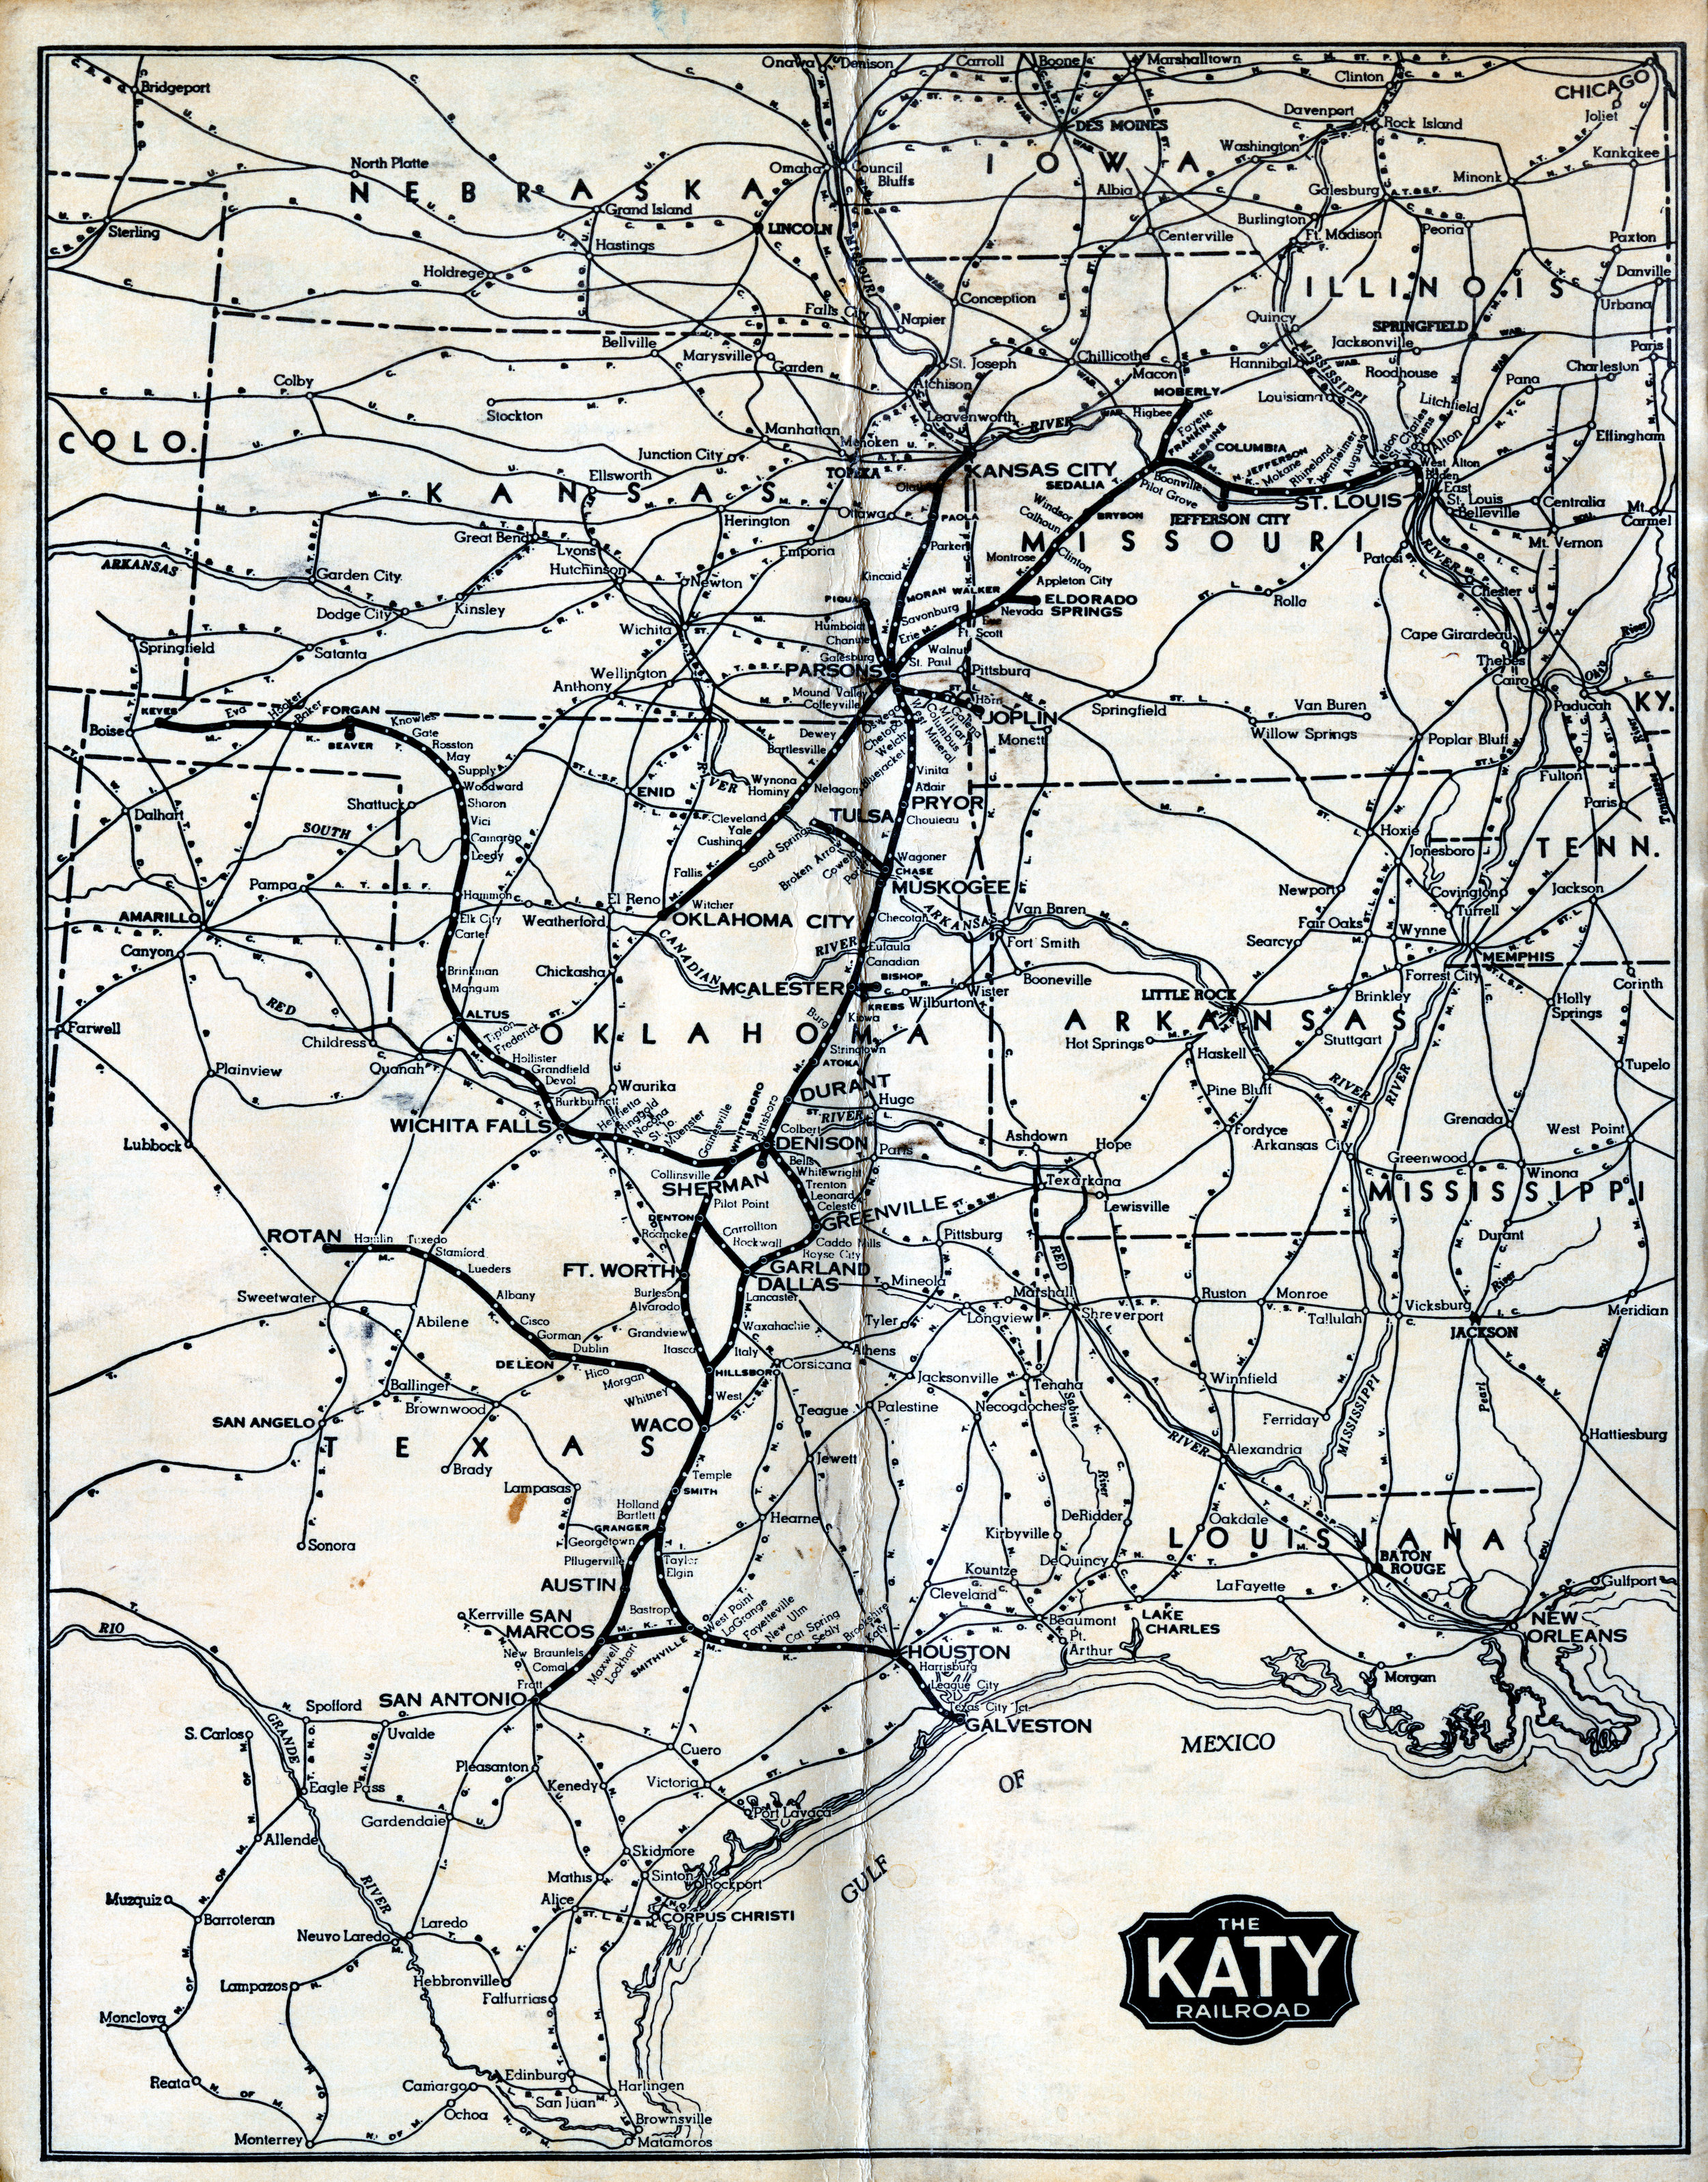 Katy Railroad in Texas Map (1).jpg